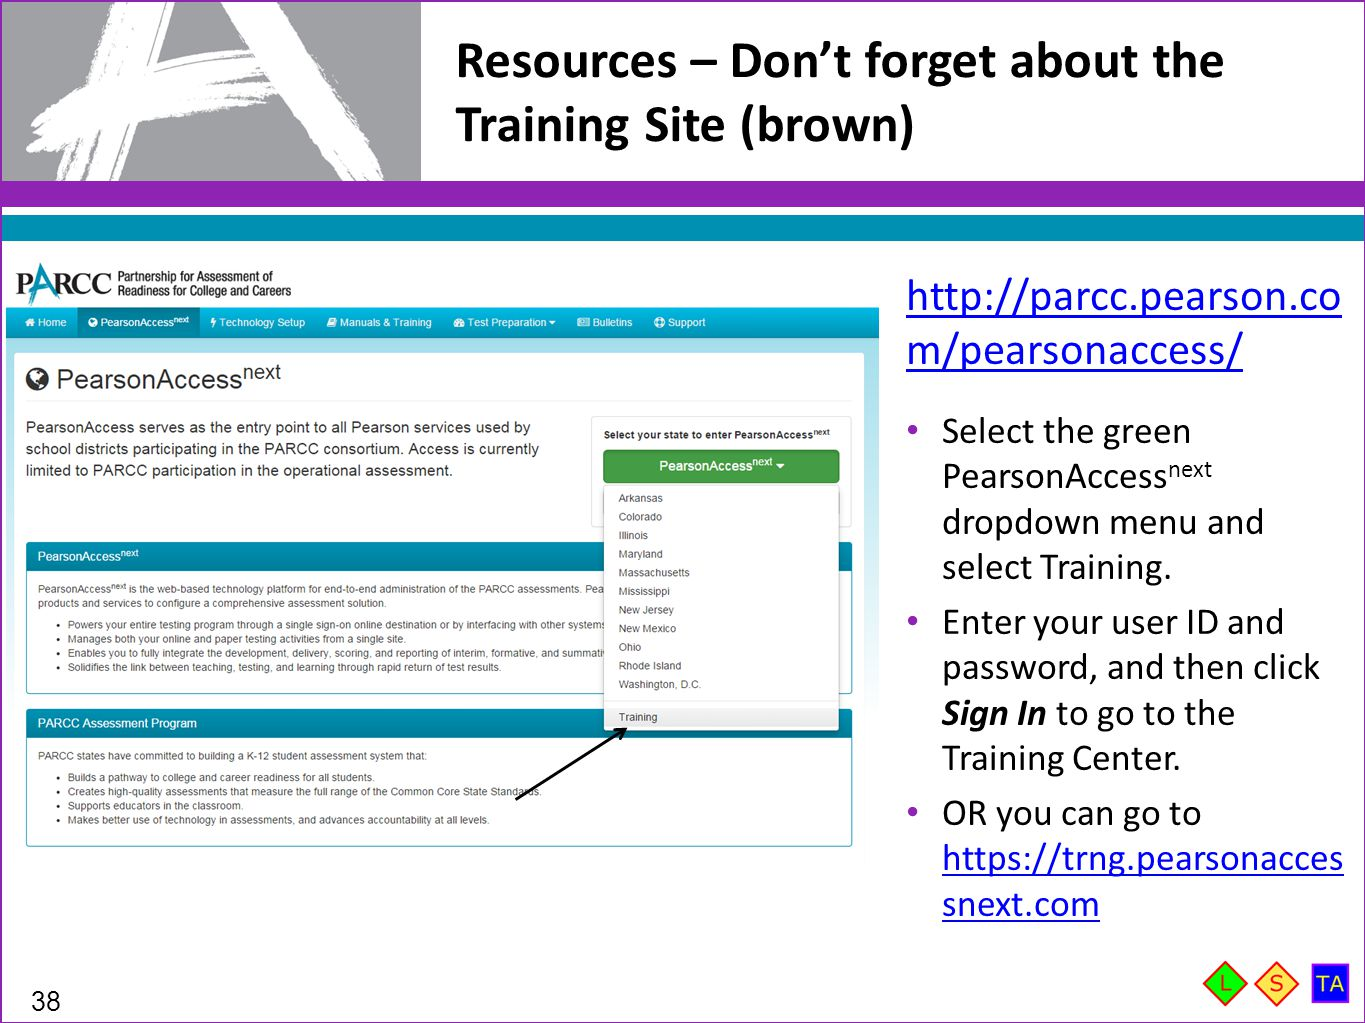 Resources – Don't forget about the Training Site (brown)